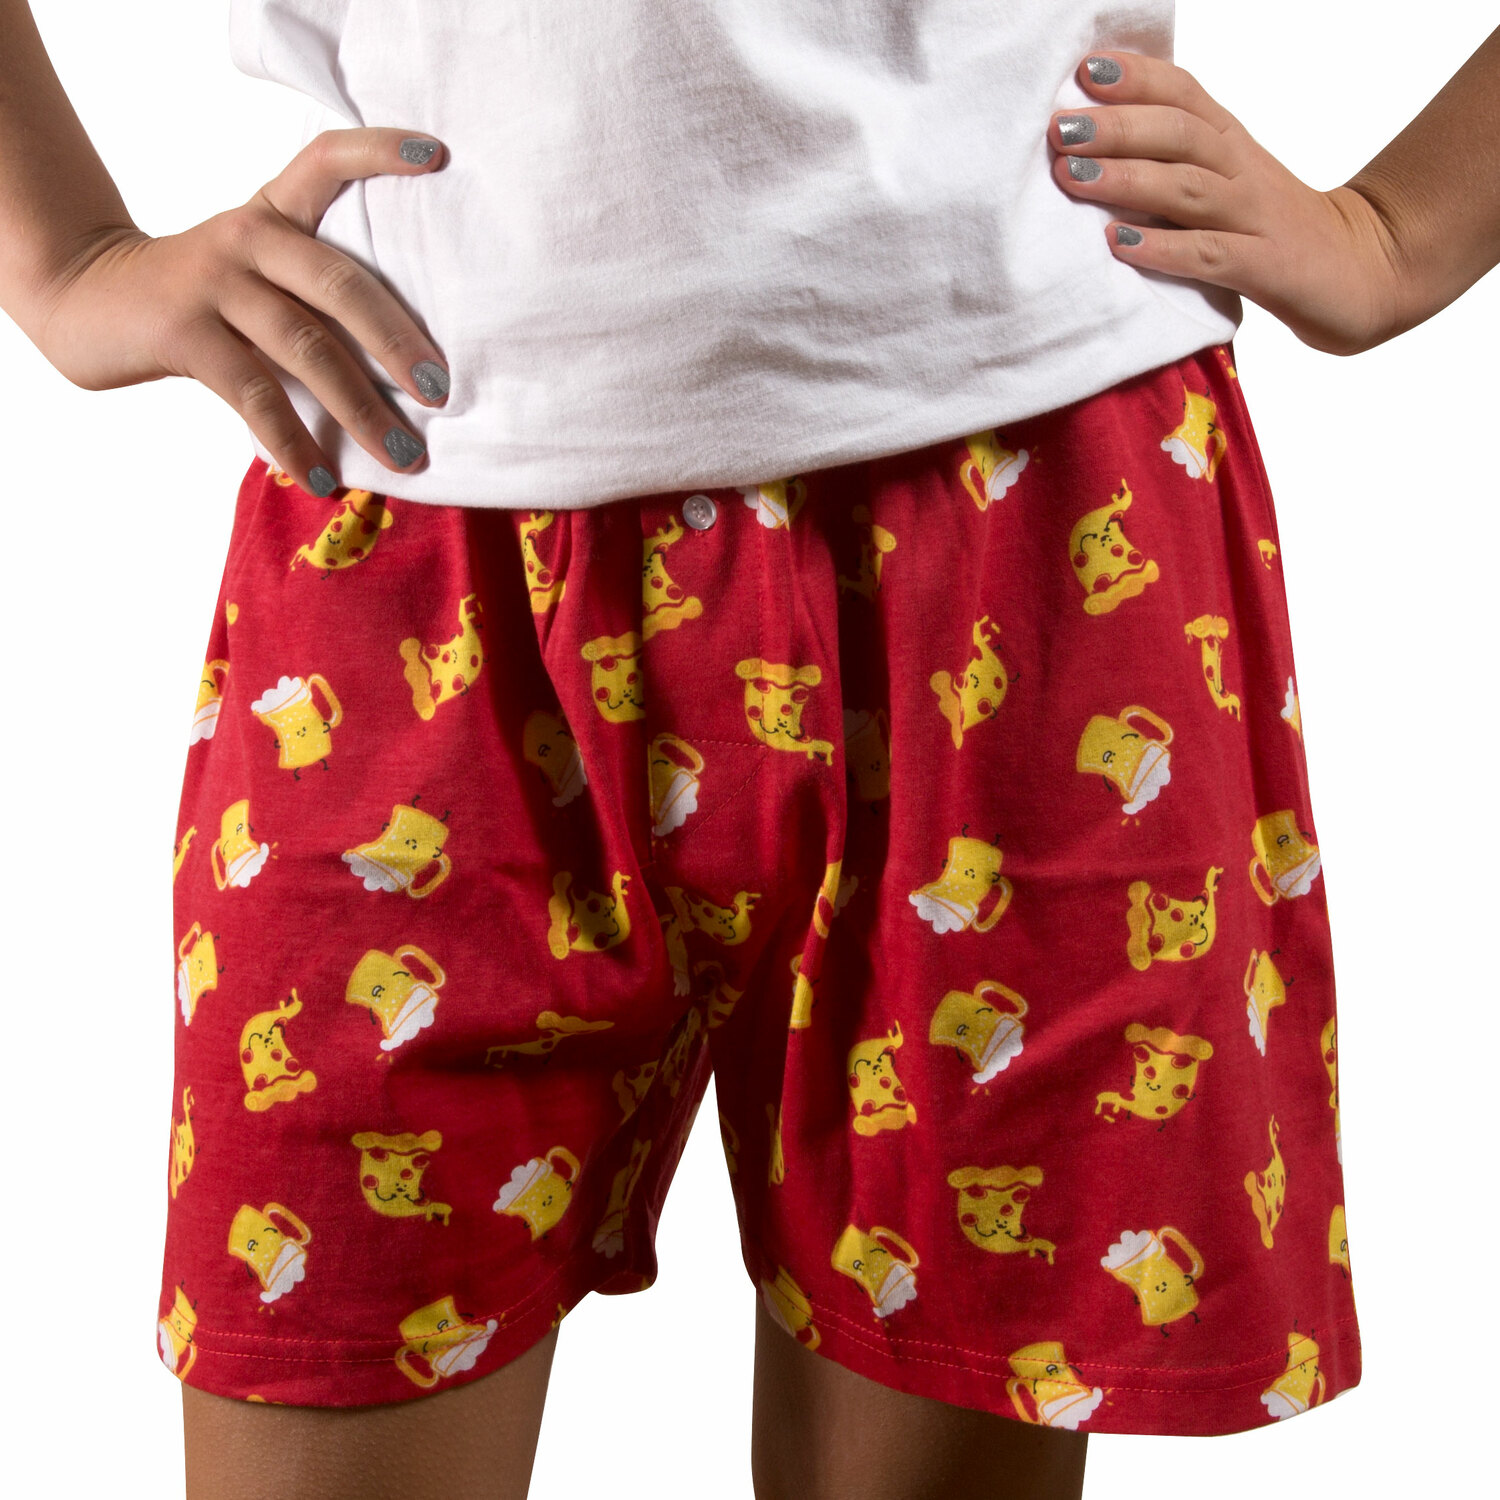 Beer and Pizza by Late Night Snacks - Beer and Pizza - XS Red Unisex Boxers